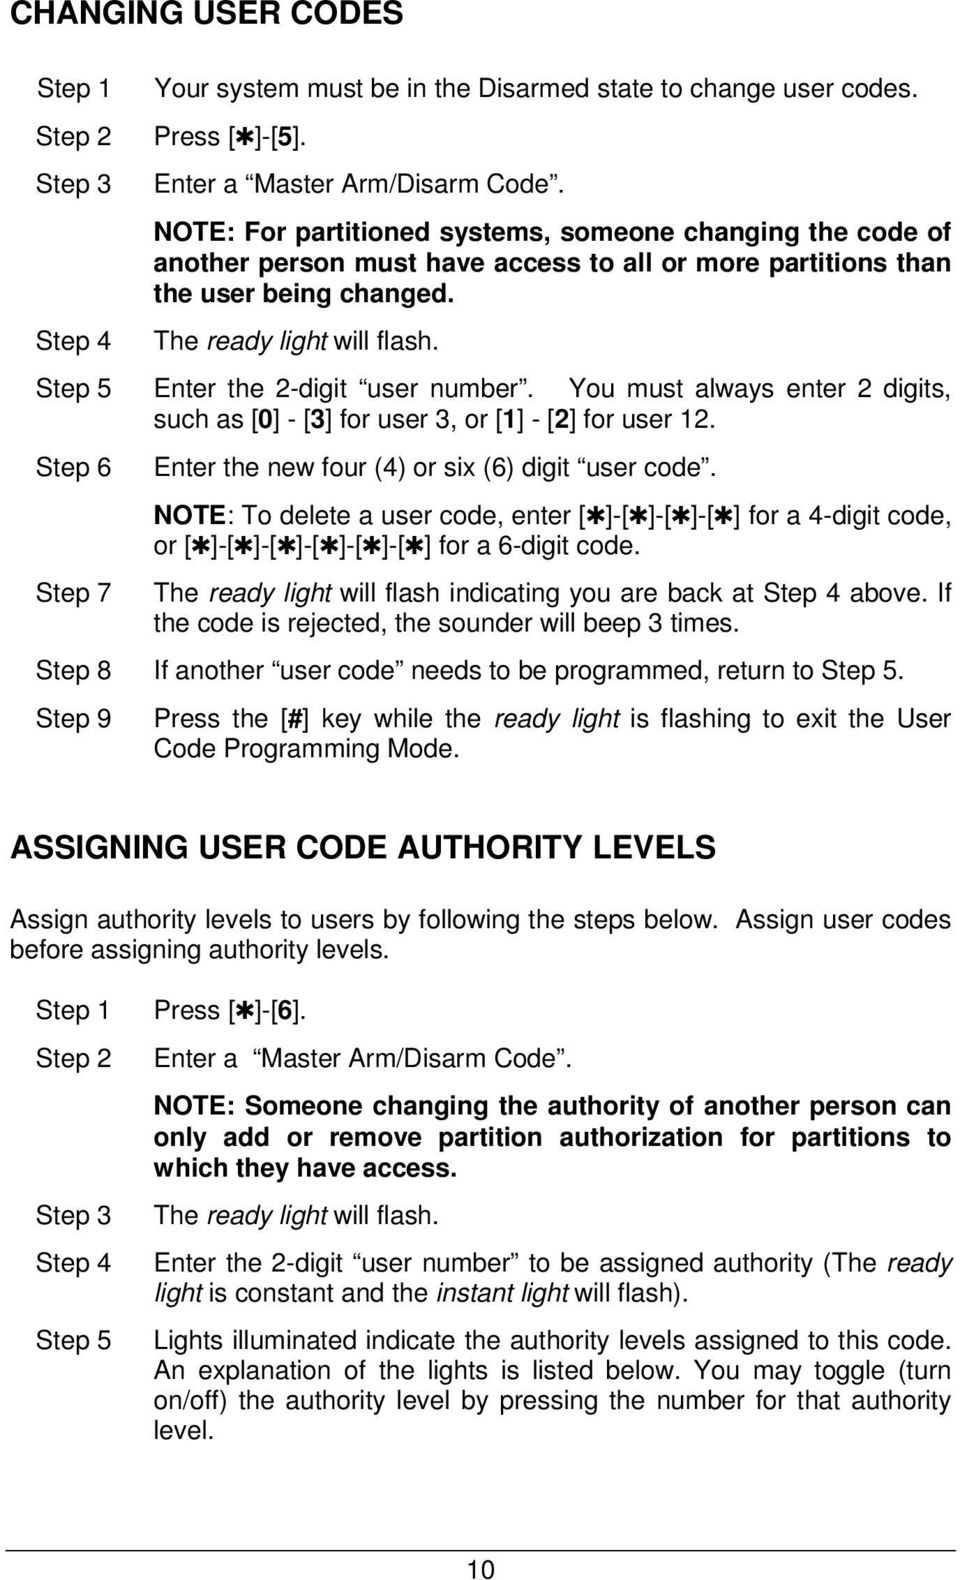 Step 5 Enter the 2-digit user number. You must always enter 2 digits, such as [0] - [3] for user 3, or [1] - [2] for user 12. Step 6 Enter the new four (4) or six (6) digit user code.